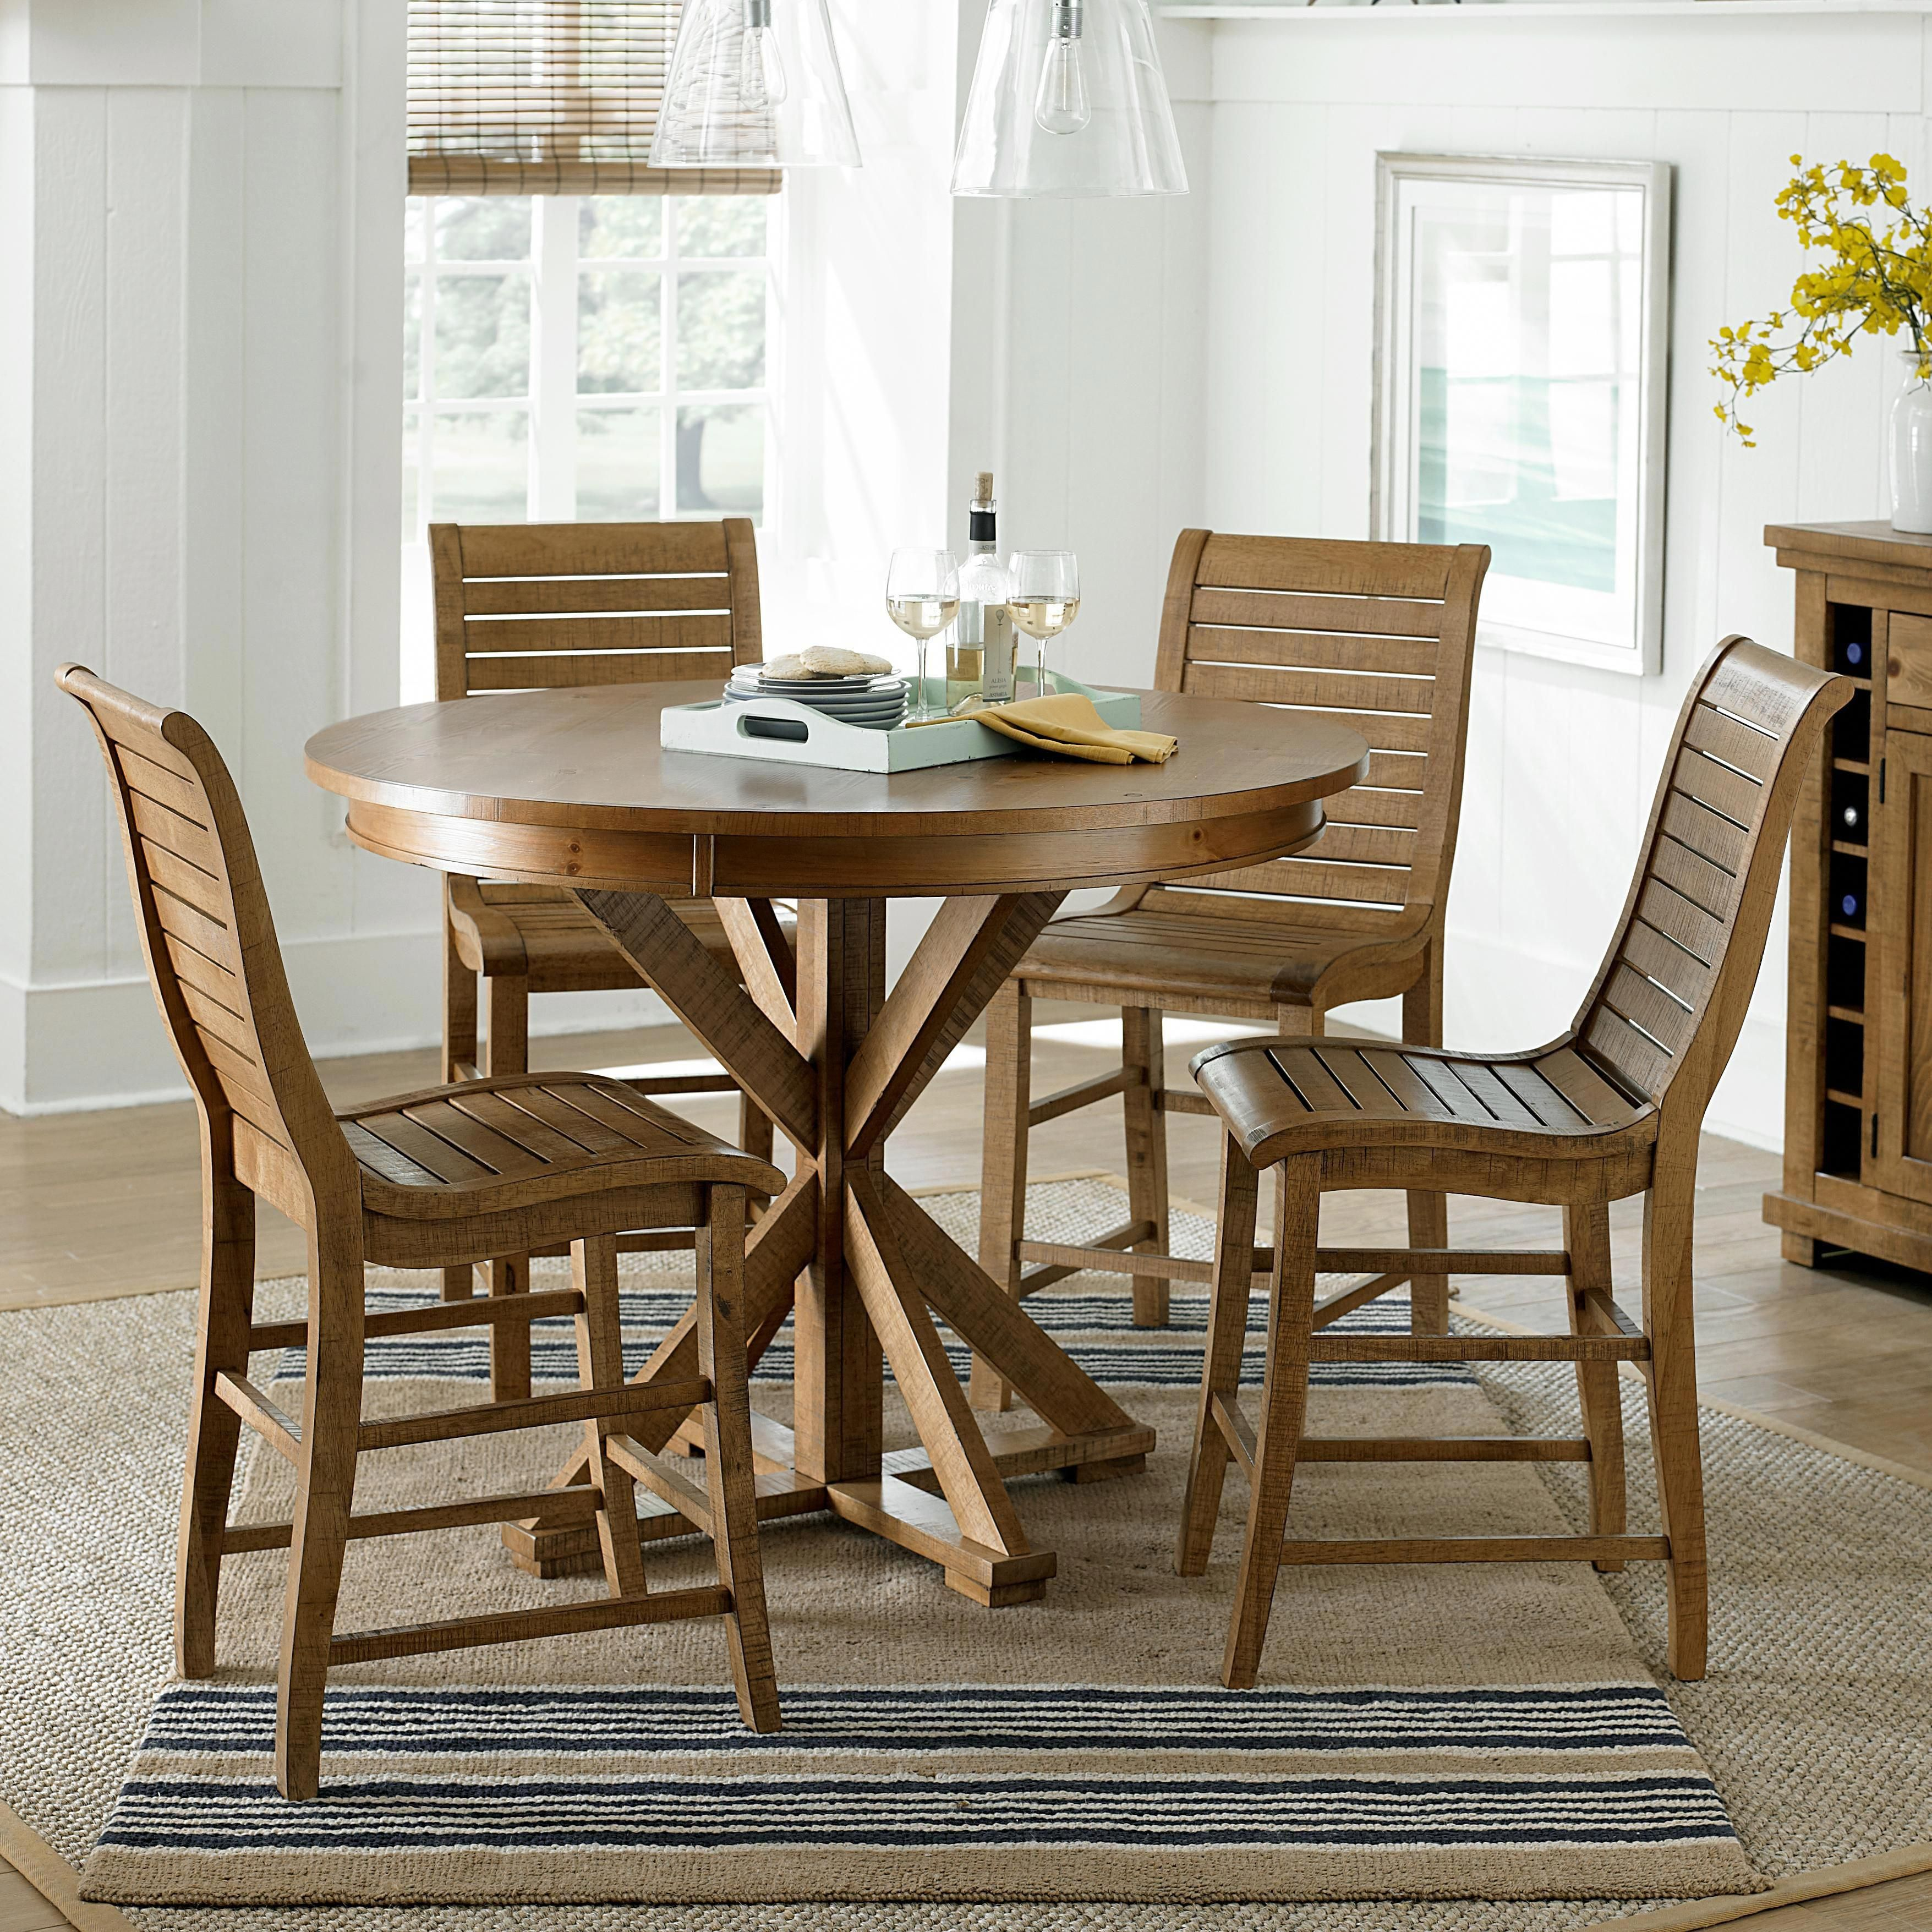 Bar height square kitchen table  Willow Dining Piece Round Counter Height Table Set by Progressive